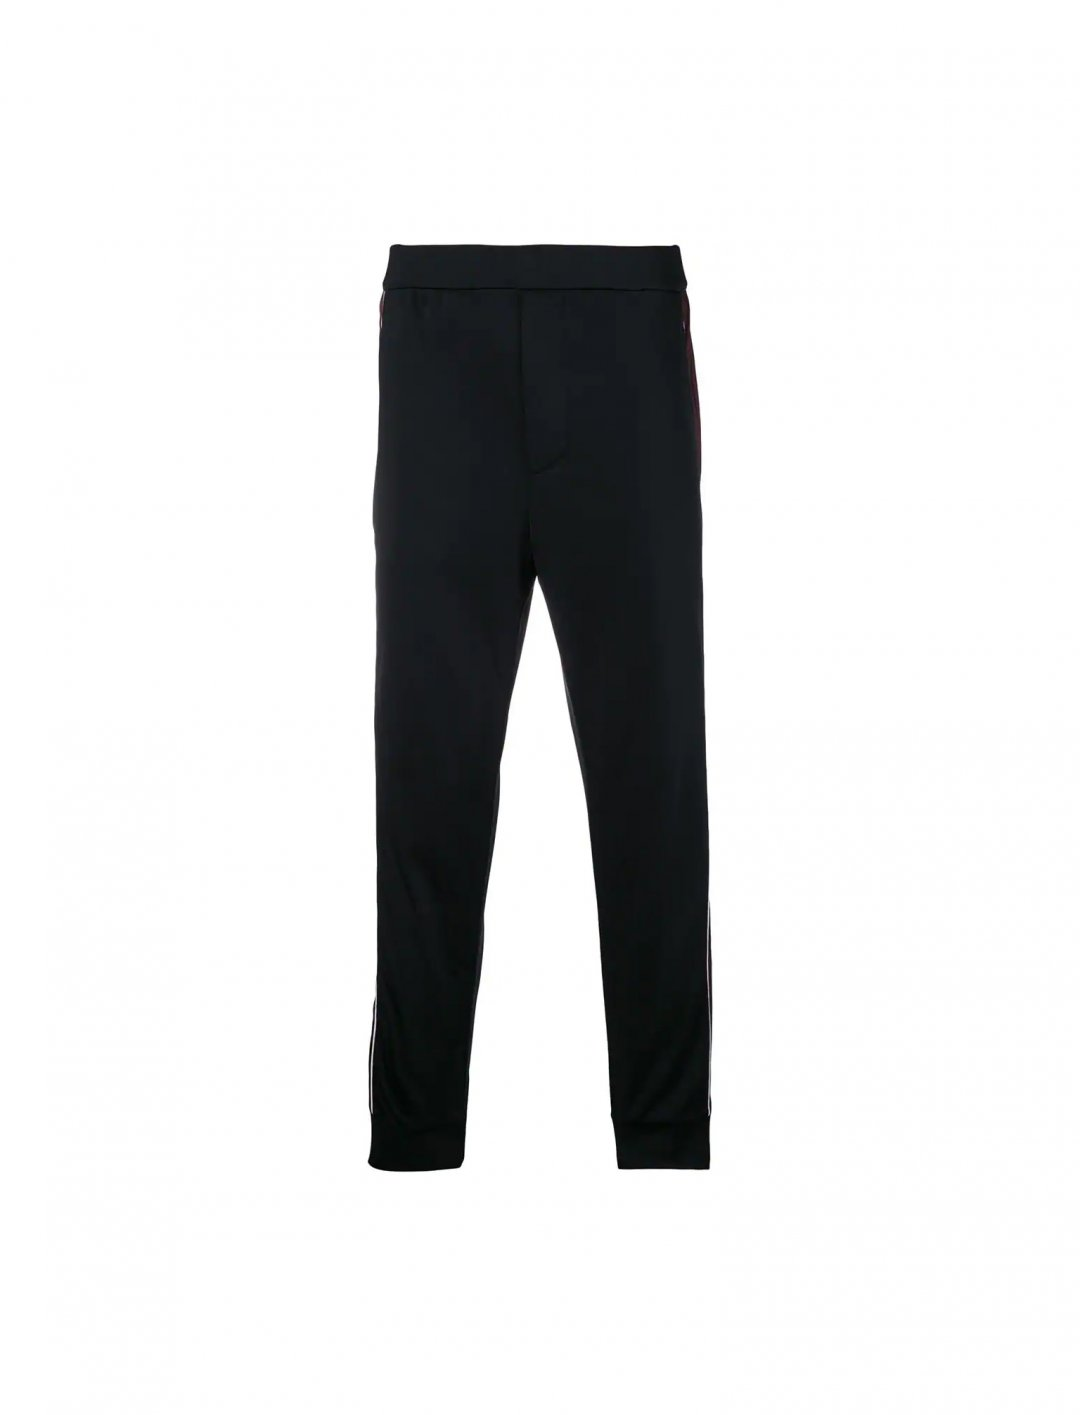 "Lotto Boyzz' Side Stripe Pants {""id"":5,""product_section_id"":1,""name"":""Clothing"",""order"":5} Prada"